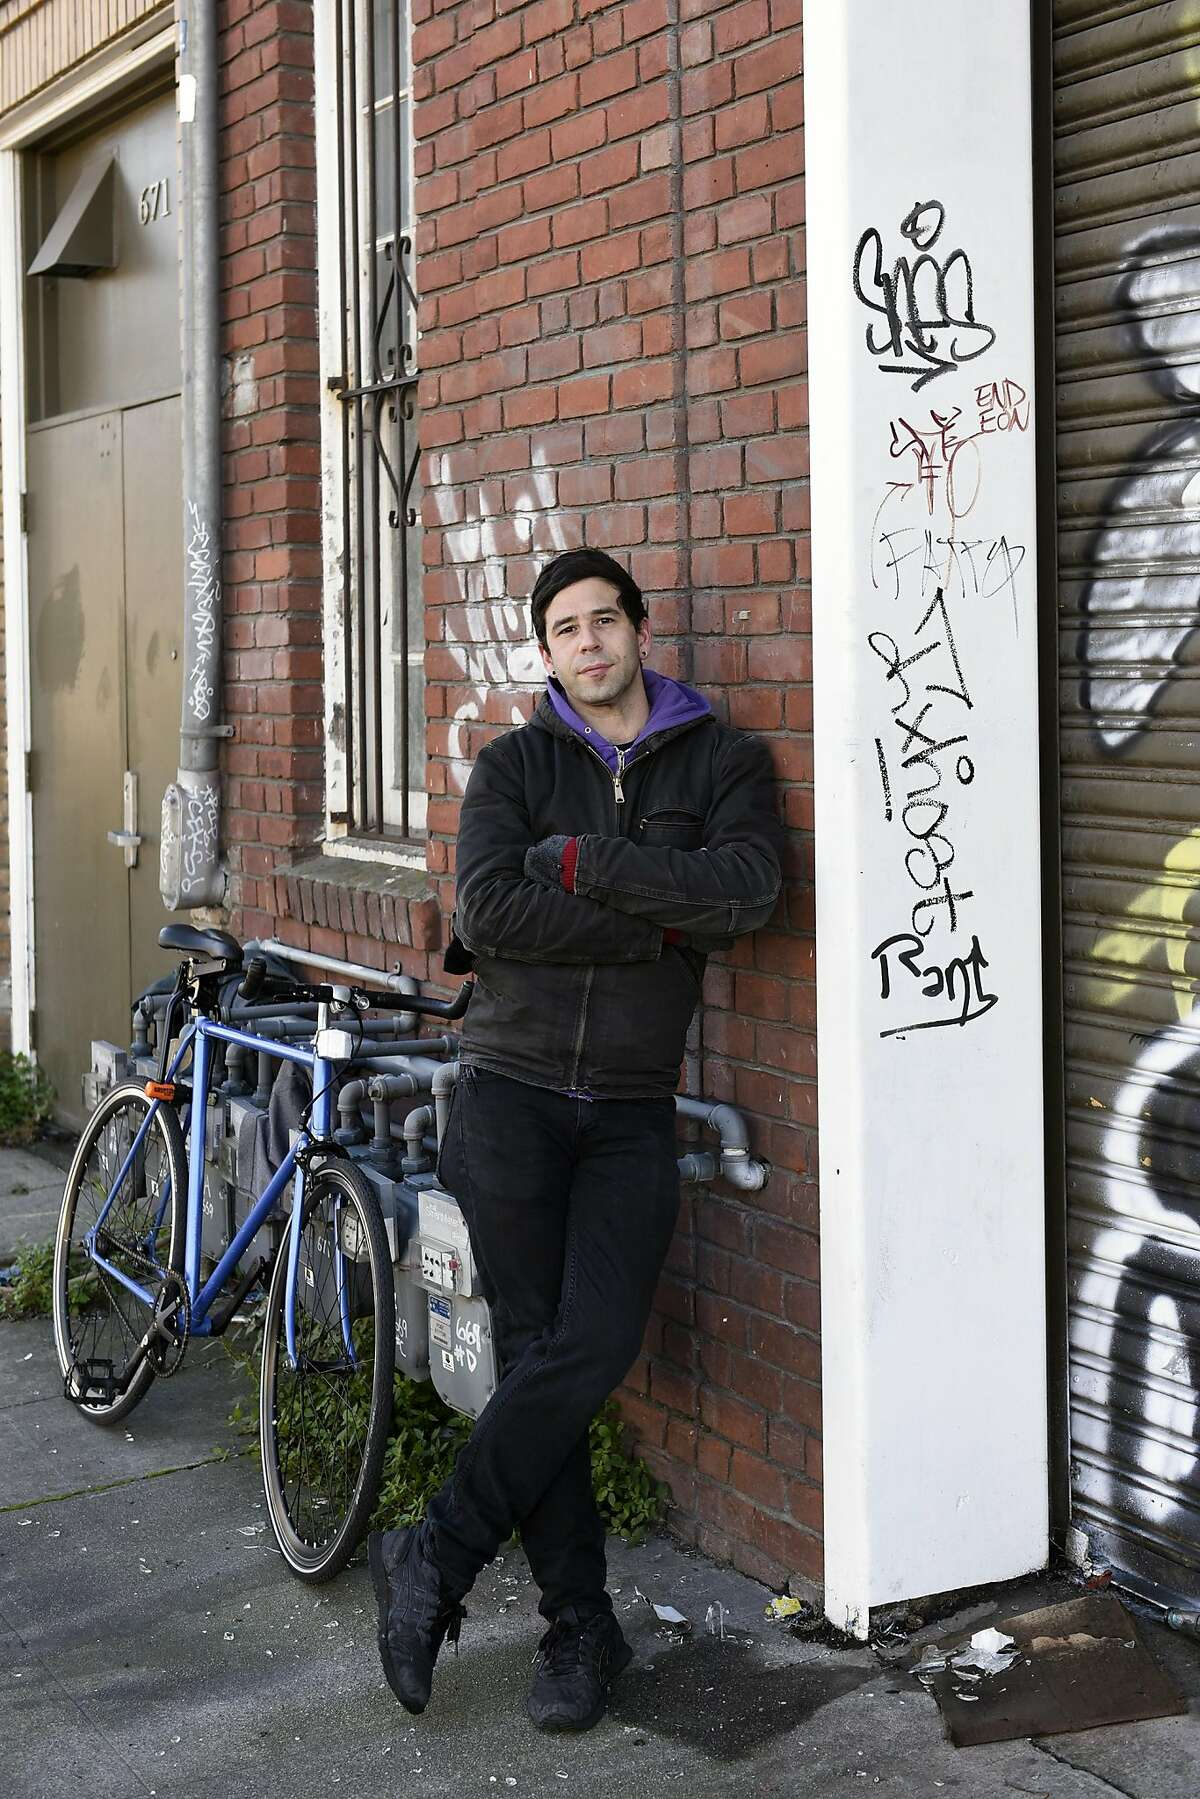 Jonah Strauss poses for a portrait in front of the West Oakland arts hub, live-work space and home of anarchist bookseller AK Press that caught fire in March 2015, killing 2 people and forcing all of it's residents out, in Oakland, CA, on Friday, December 16, 2016.